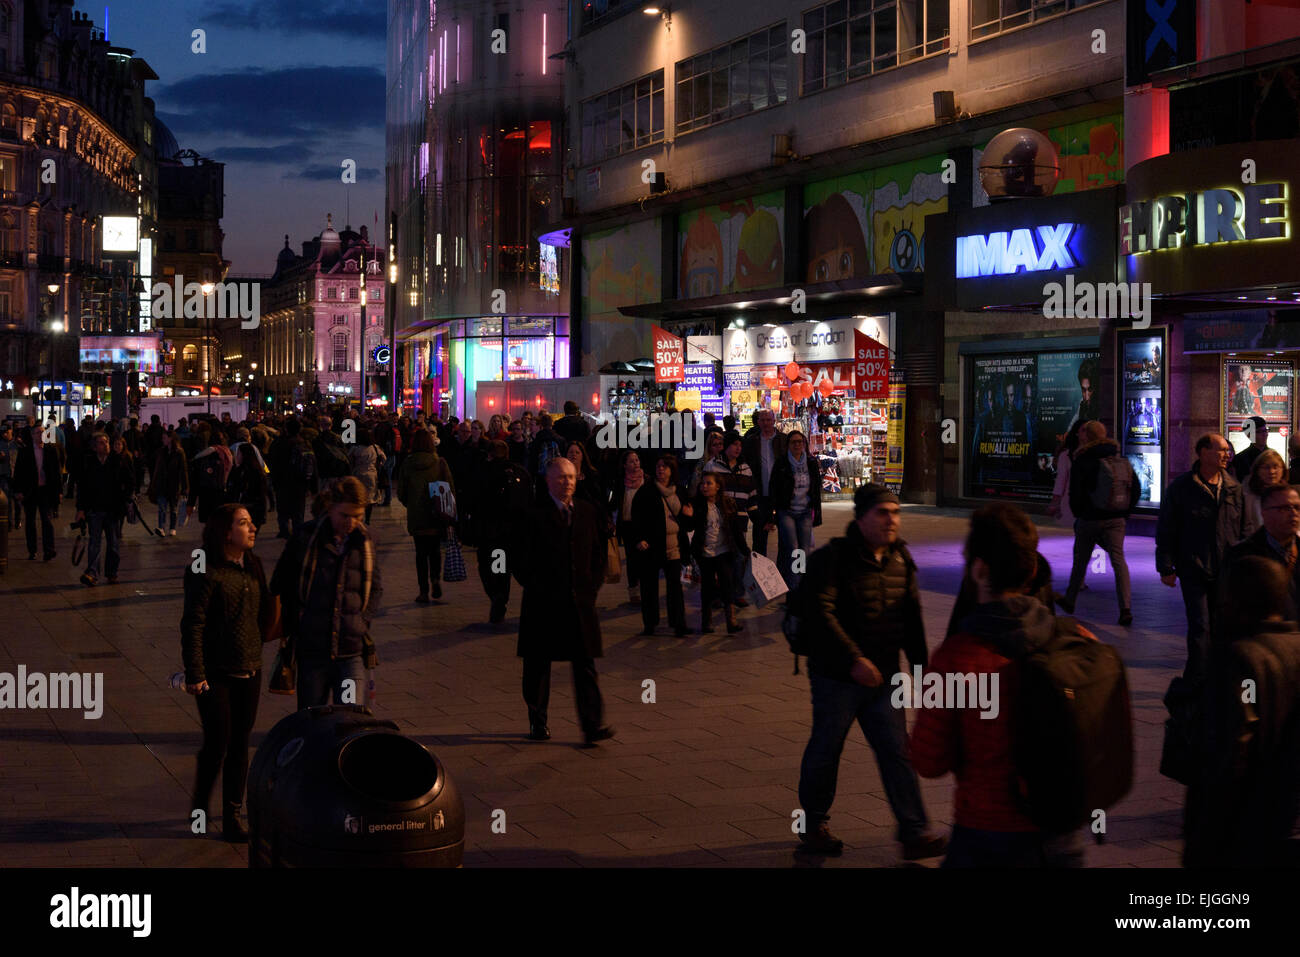 London Leicester Square at night - Stock Image